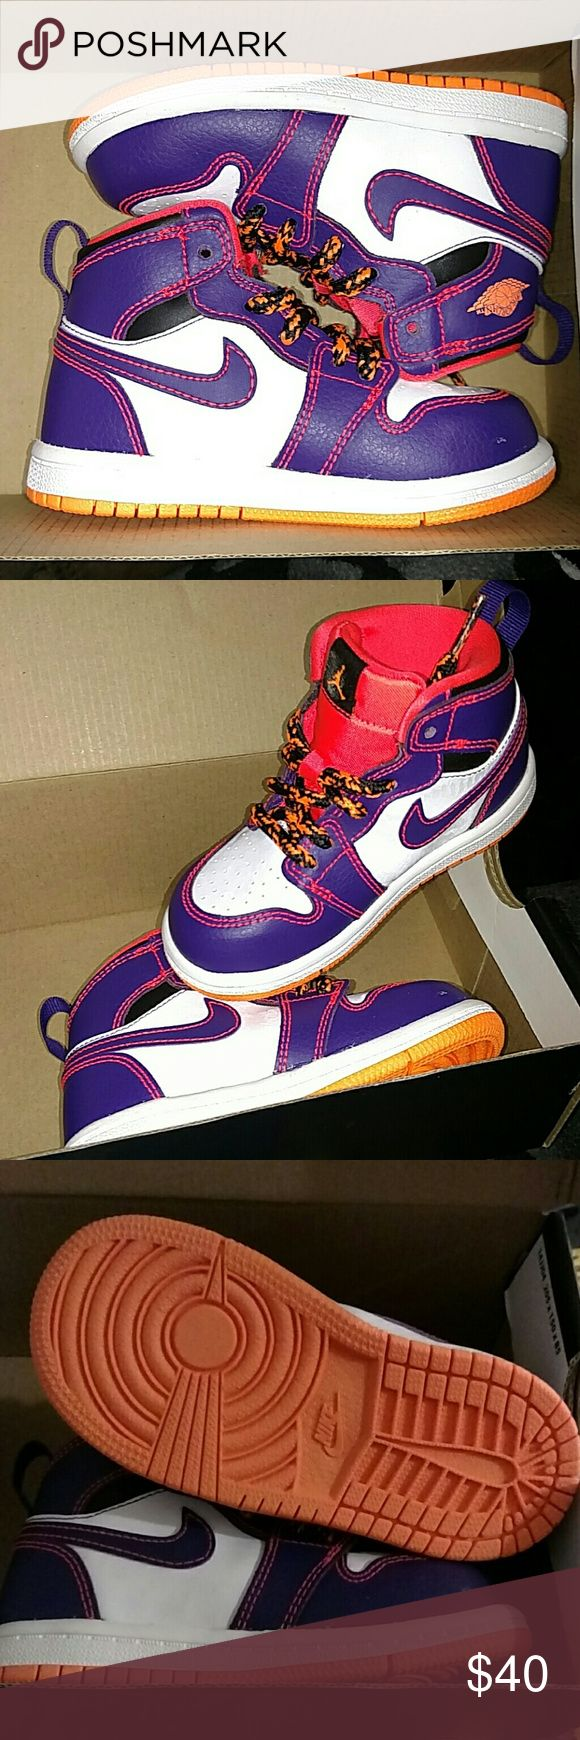 Toddler Jordans size 7 Brand new! In box NEVER WORN! Purple and Orange Toddler size 7. Jordan Shoes Sneakers